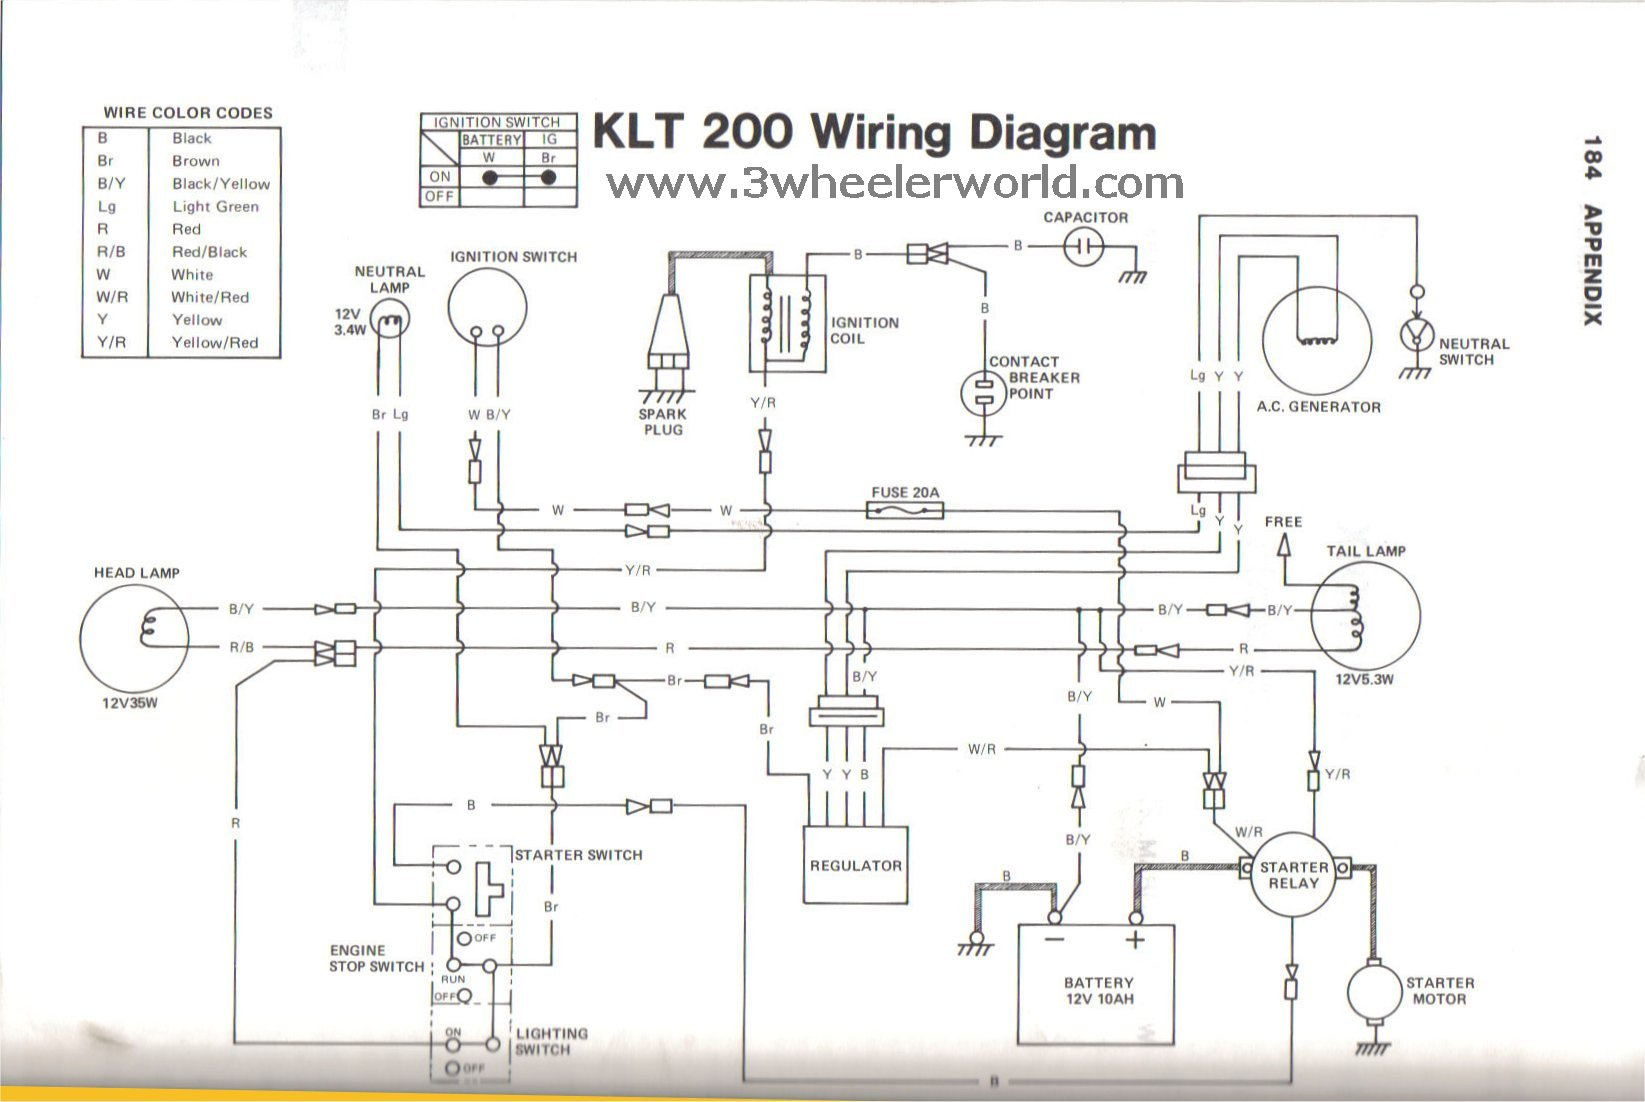 KLT200WiringDiagram1 3 wheeler world tech help kawasaki wiring diagrams wiring diagram for honda atc 200 at bayanpartner.co